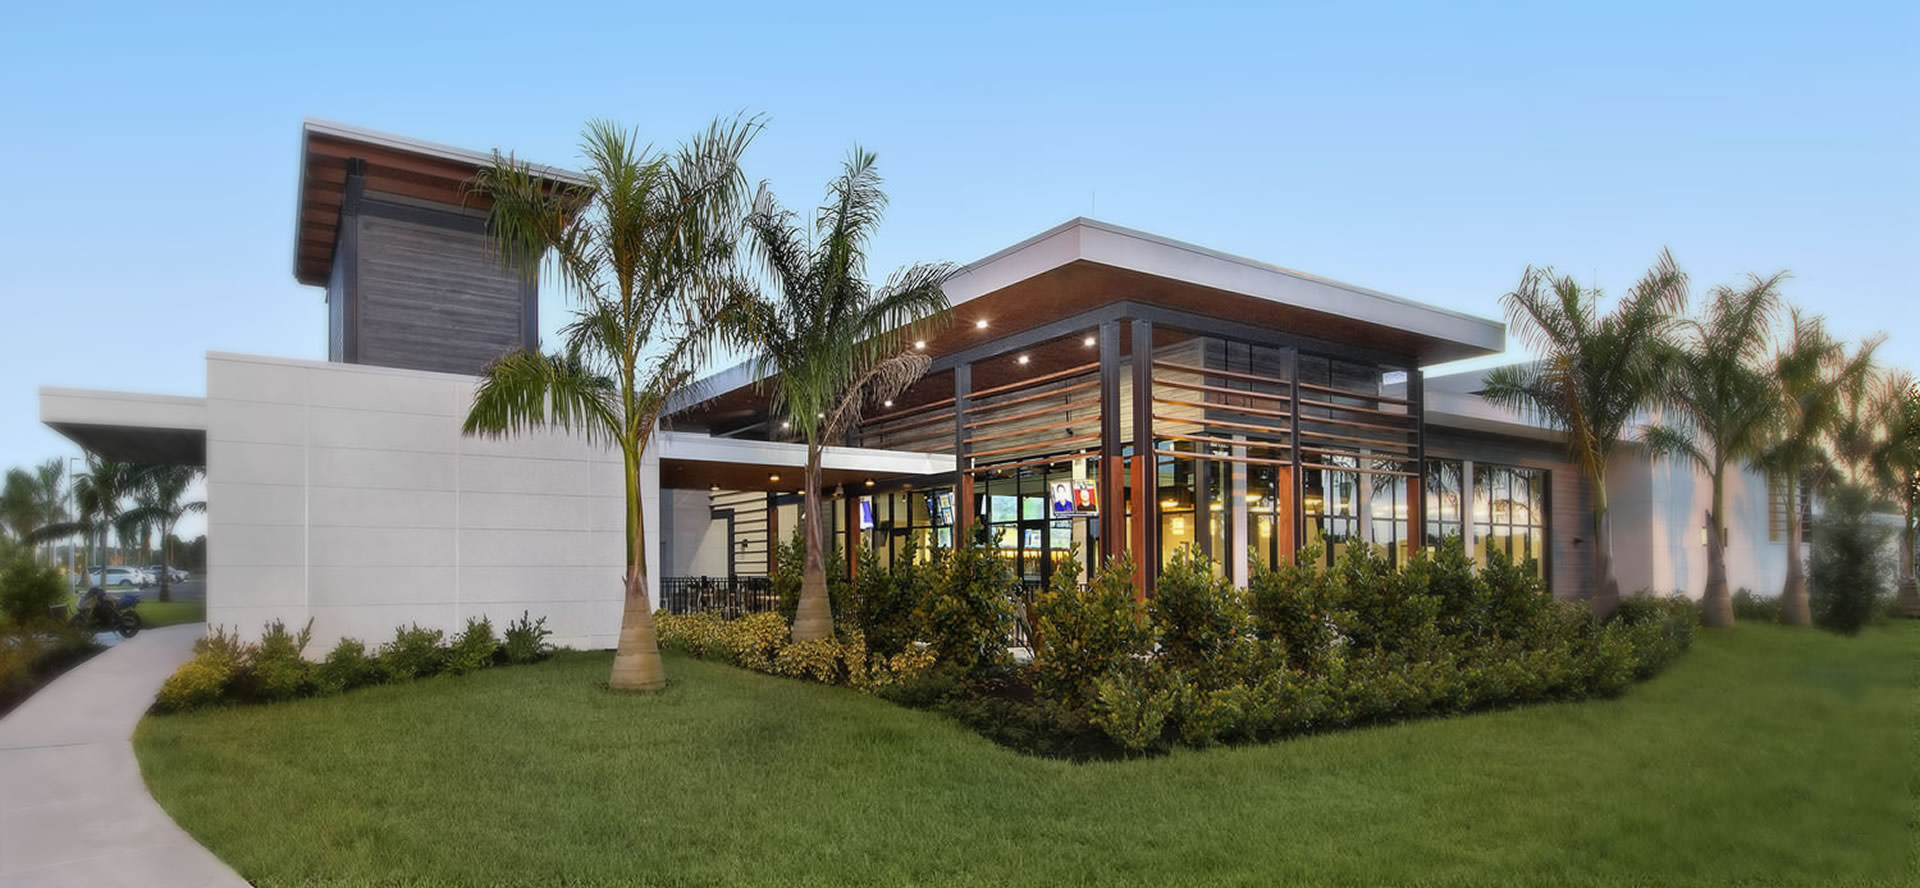 THE BONITA SPRINGS POKER ROOM ACTIVATES SOUTHWEST FLORIDA'S LOCAL BUSINESSES TO BUILD AREA ENTERTAINMENT MECCA